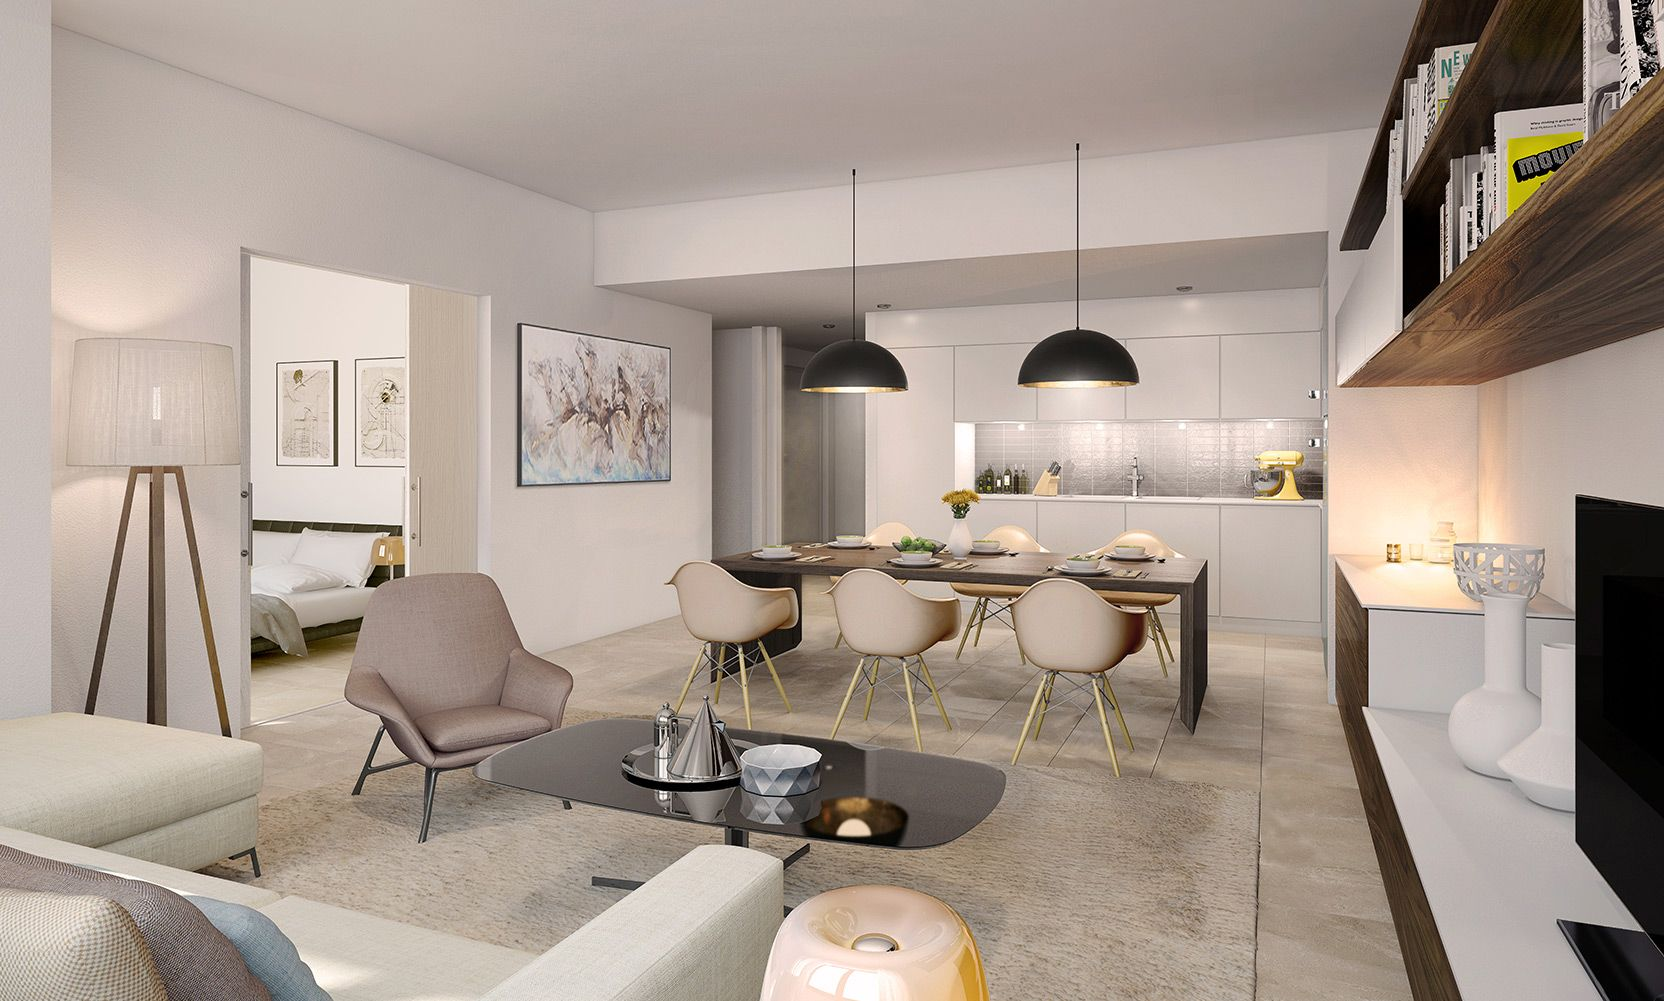 Superb #ZahraTownhouses #Residential Phase In #TownSquare #Dubai